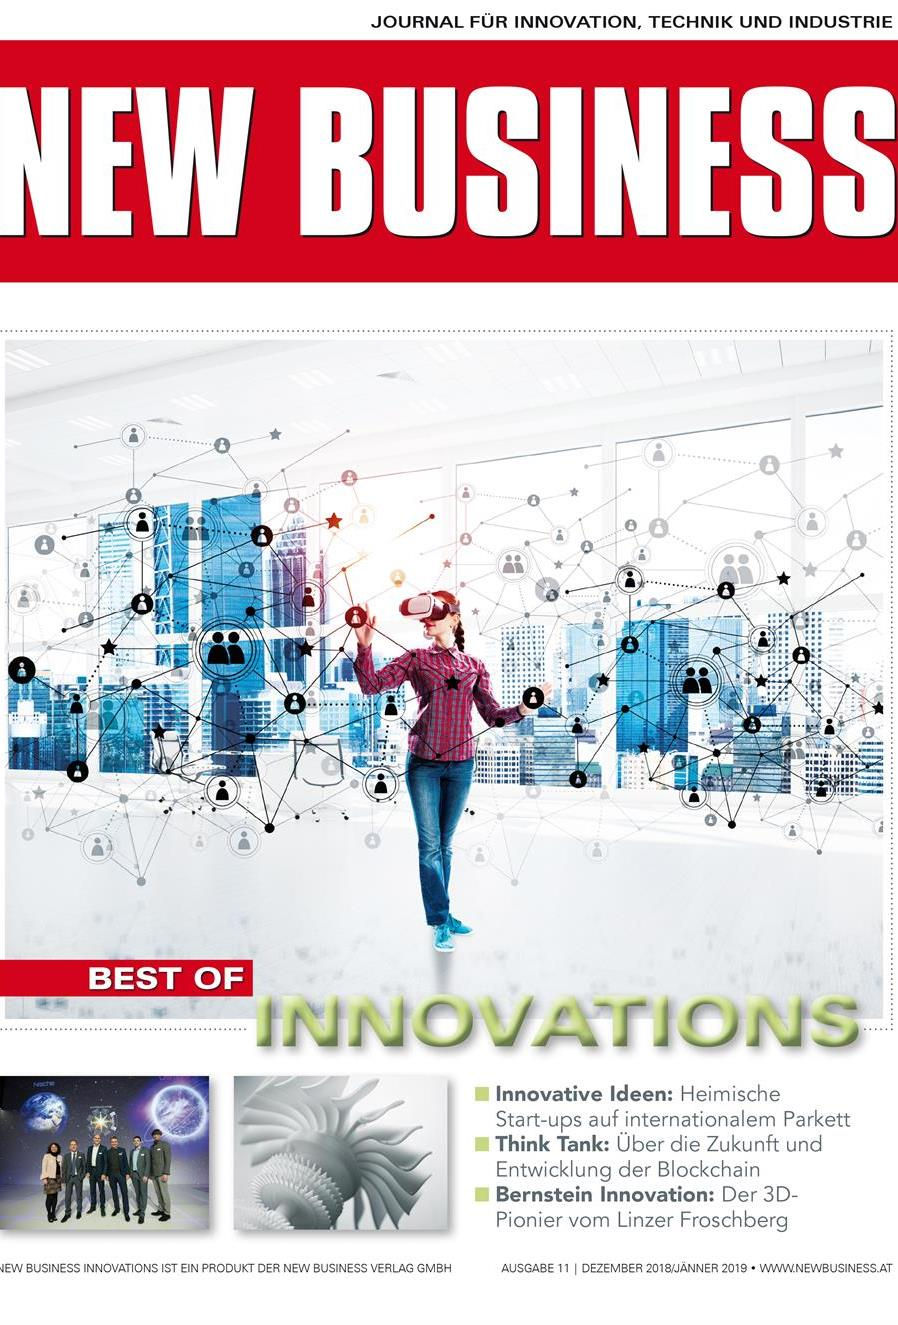 Cover: NEW BUSINESS Innovations - NR.11, DEZEMBER 2018/JÄNNER 2019